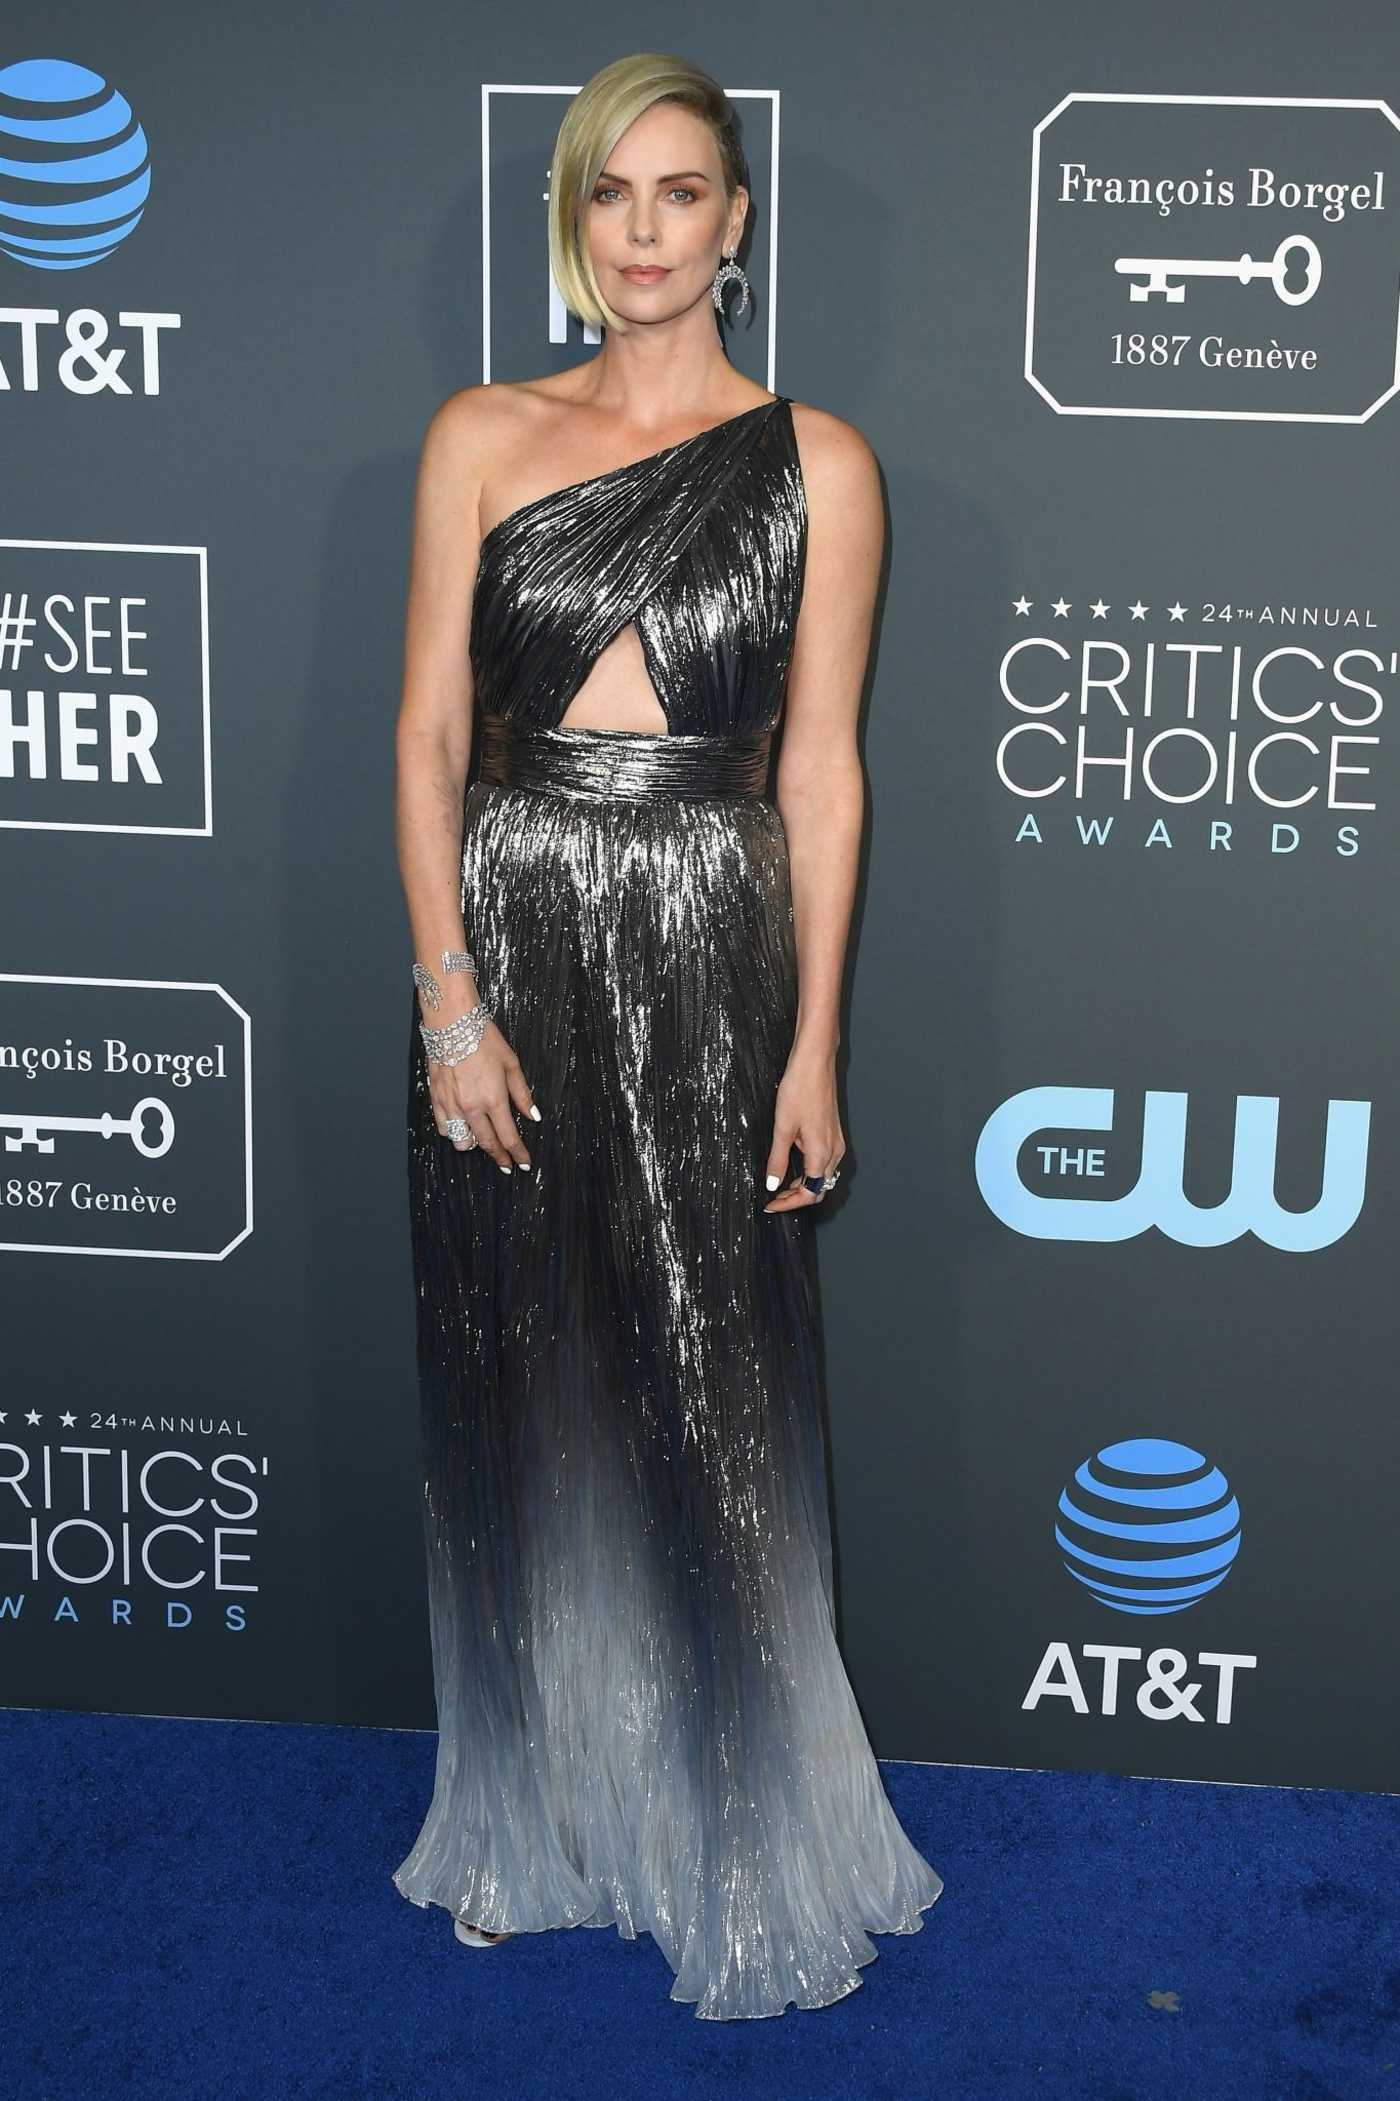 Charlize Theron Attends the 24th Annual Critics' Choice Awards at Barker Hangar in Santa Monica 01/13/2019